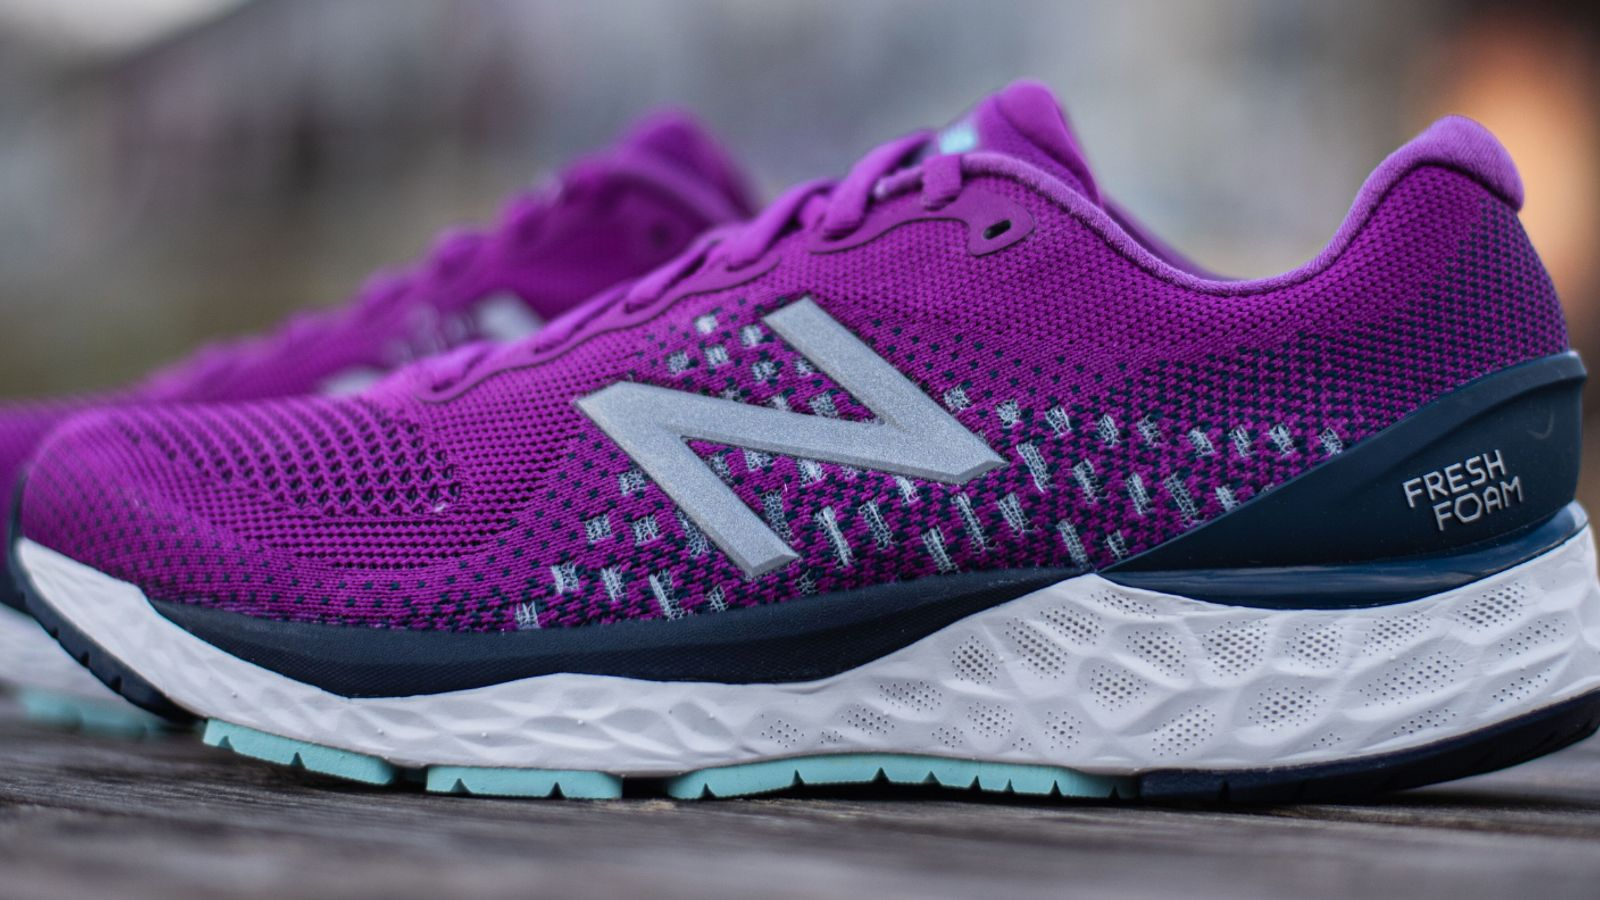 Shoe Review: New Balance Fresh Foam 880v10 | Fleet Feet